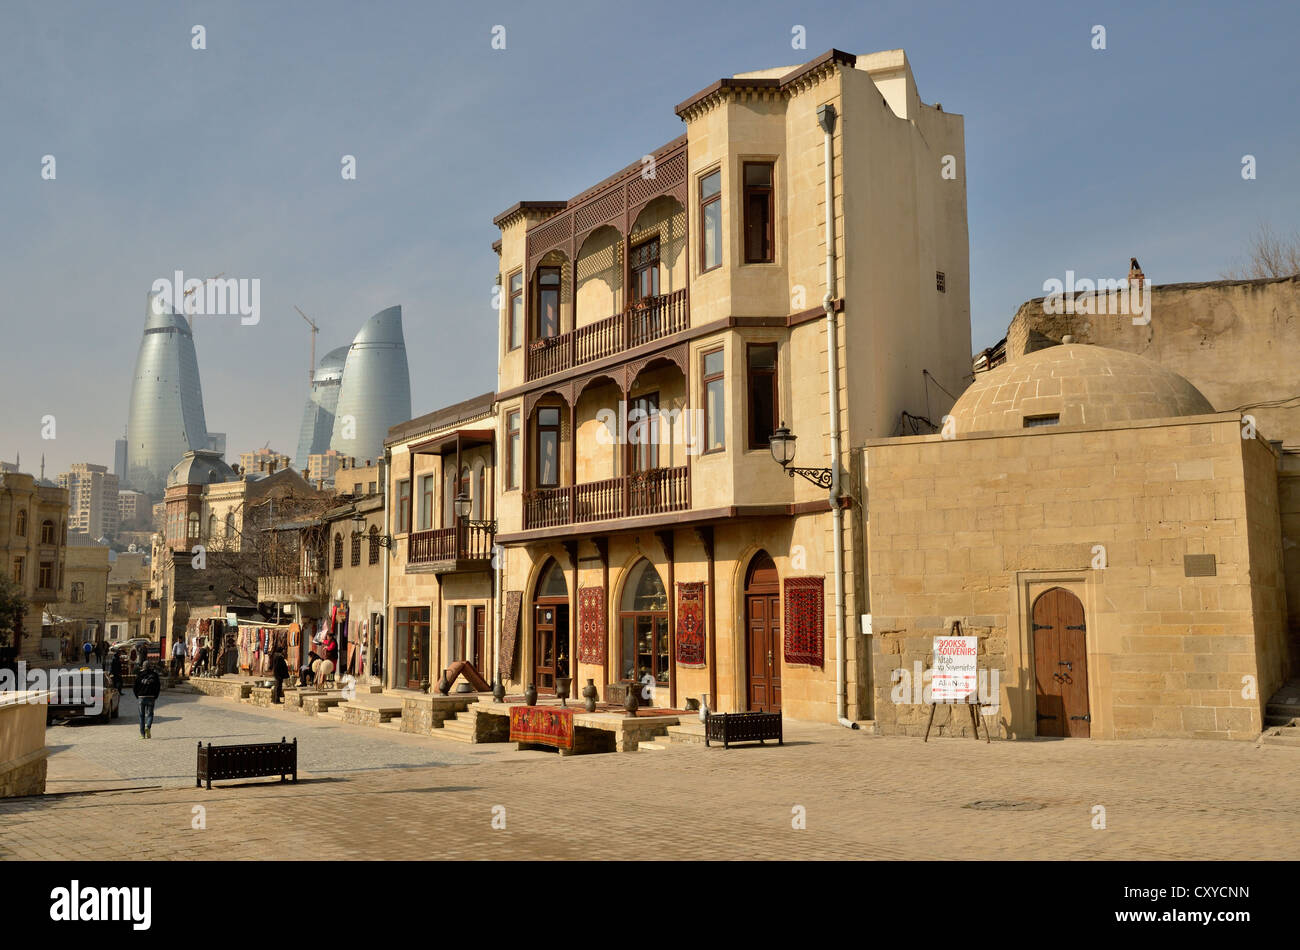 Historic town centre of Baku, UNESCO World Heritage Site, the three high-rise buildings 'Flame Towers' - Stock Image